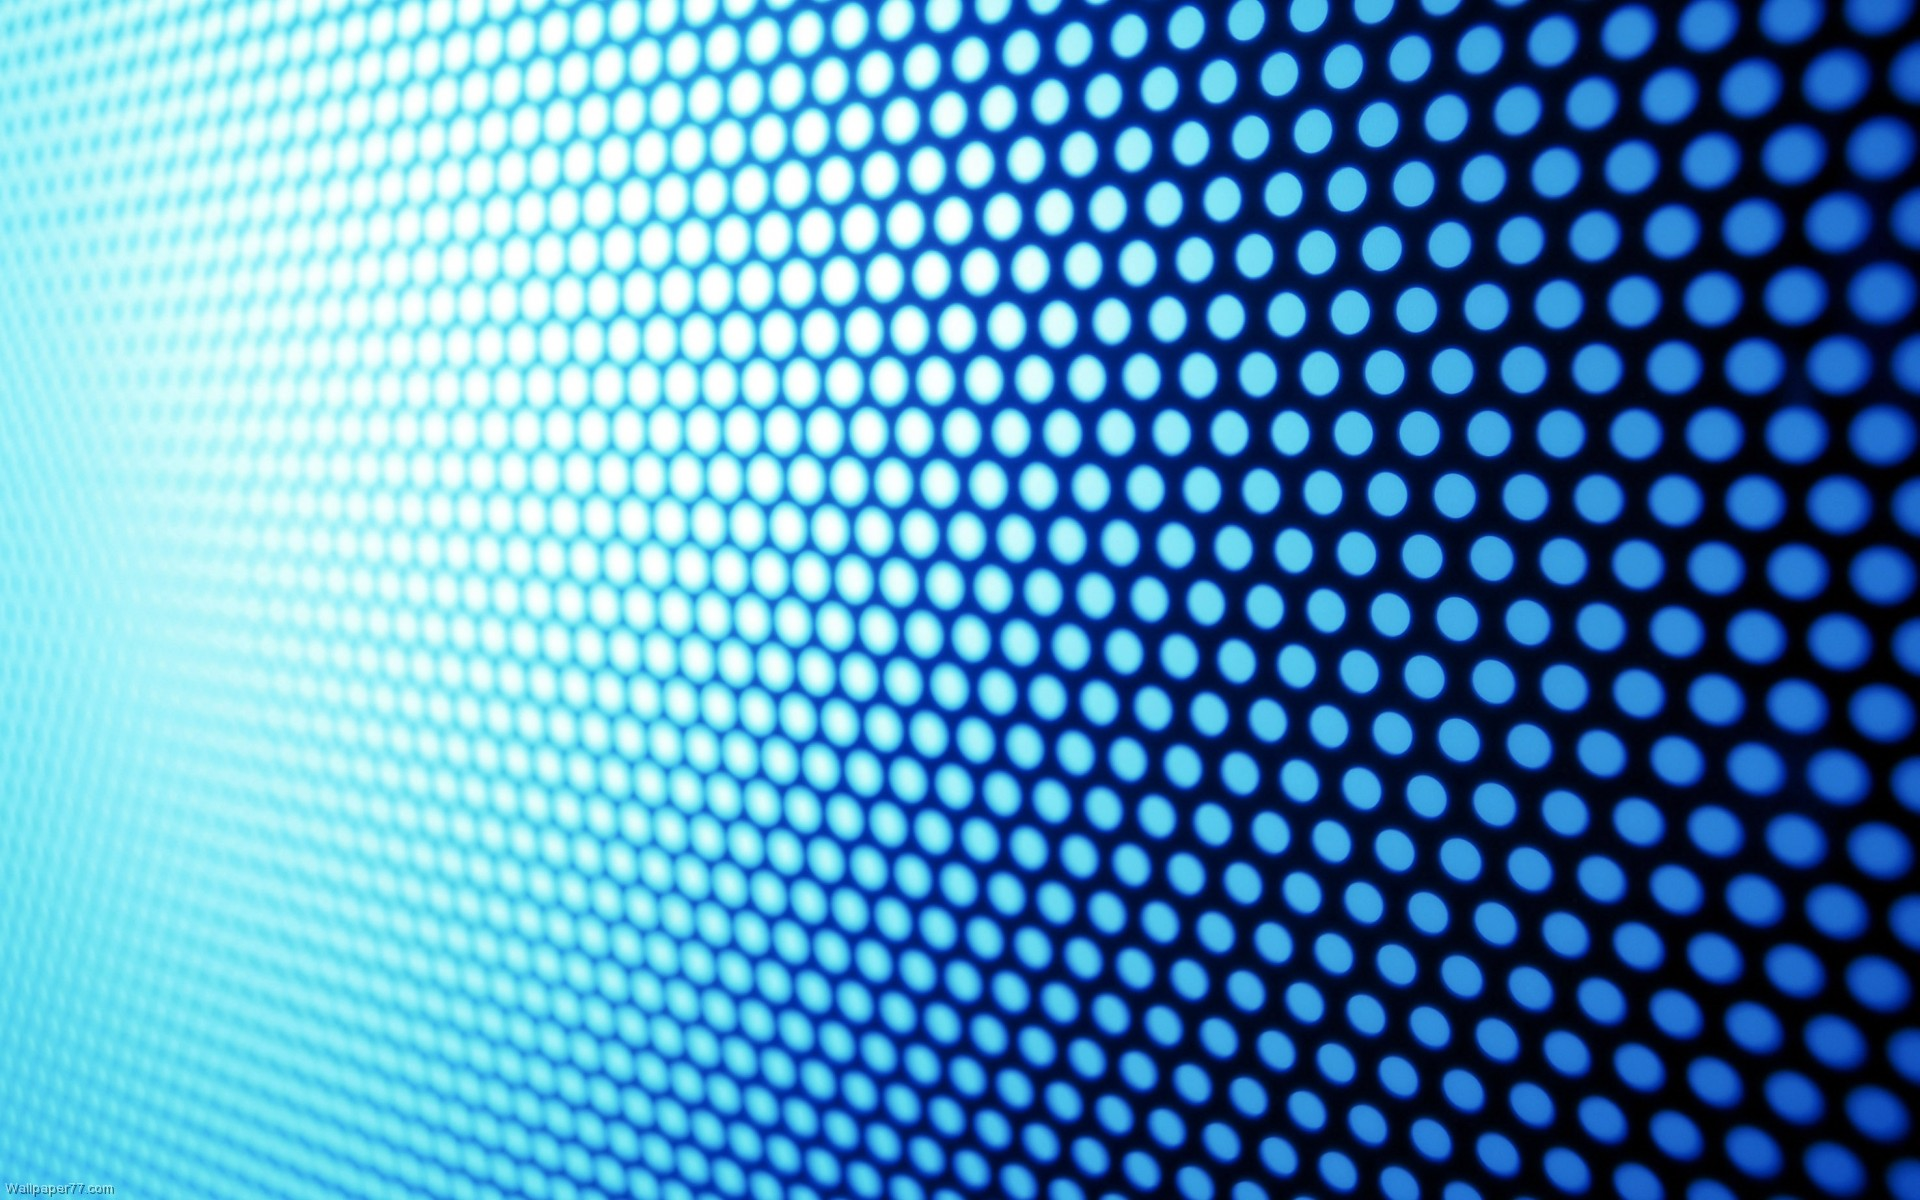 Blue-Carbon-Fiber-HD-PixelsTalk-Net-wallpaper-wpc5802921